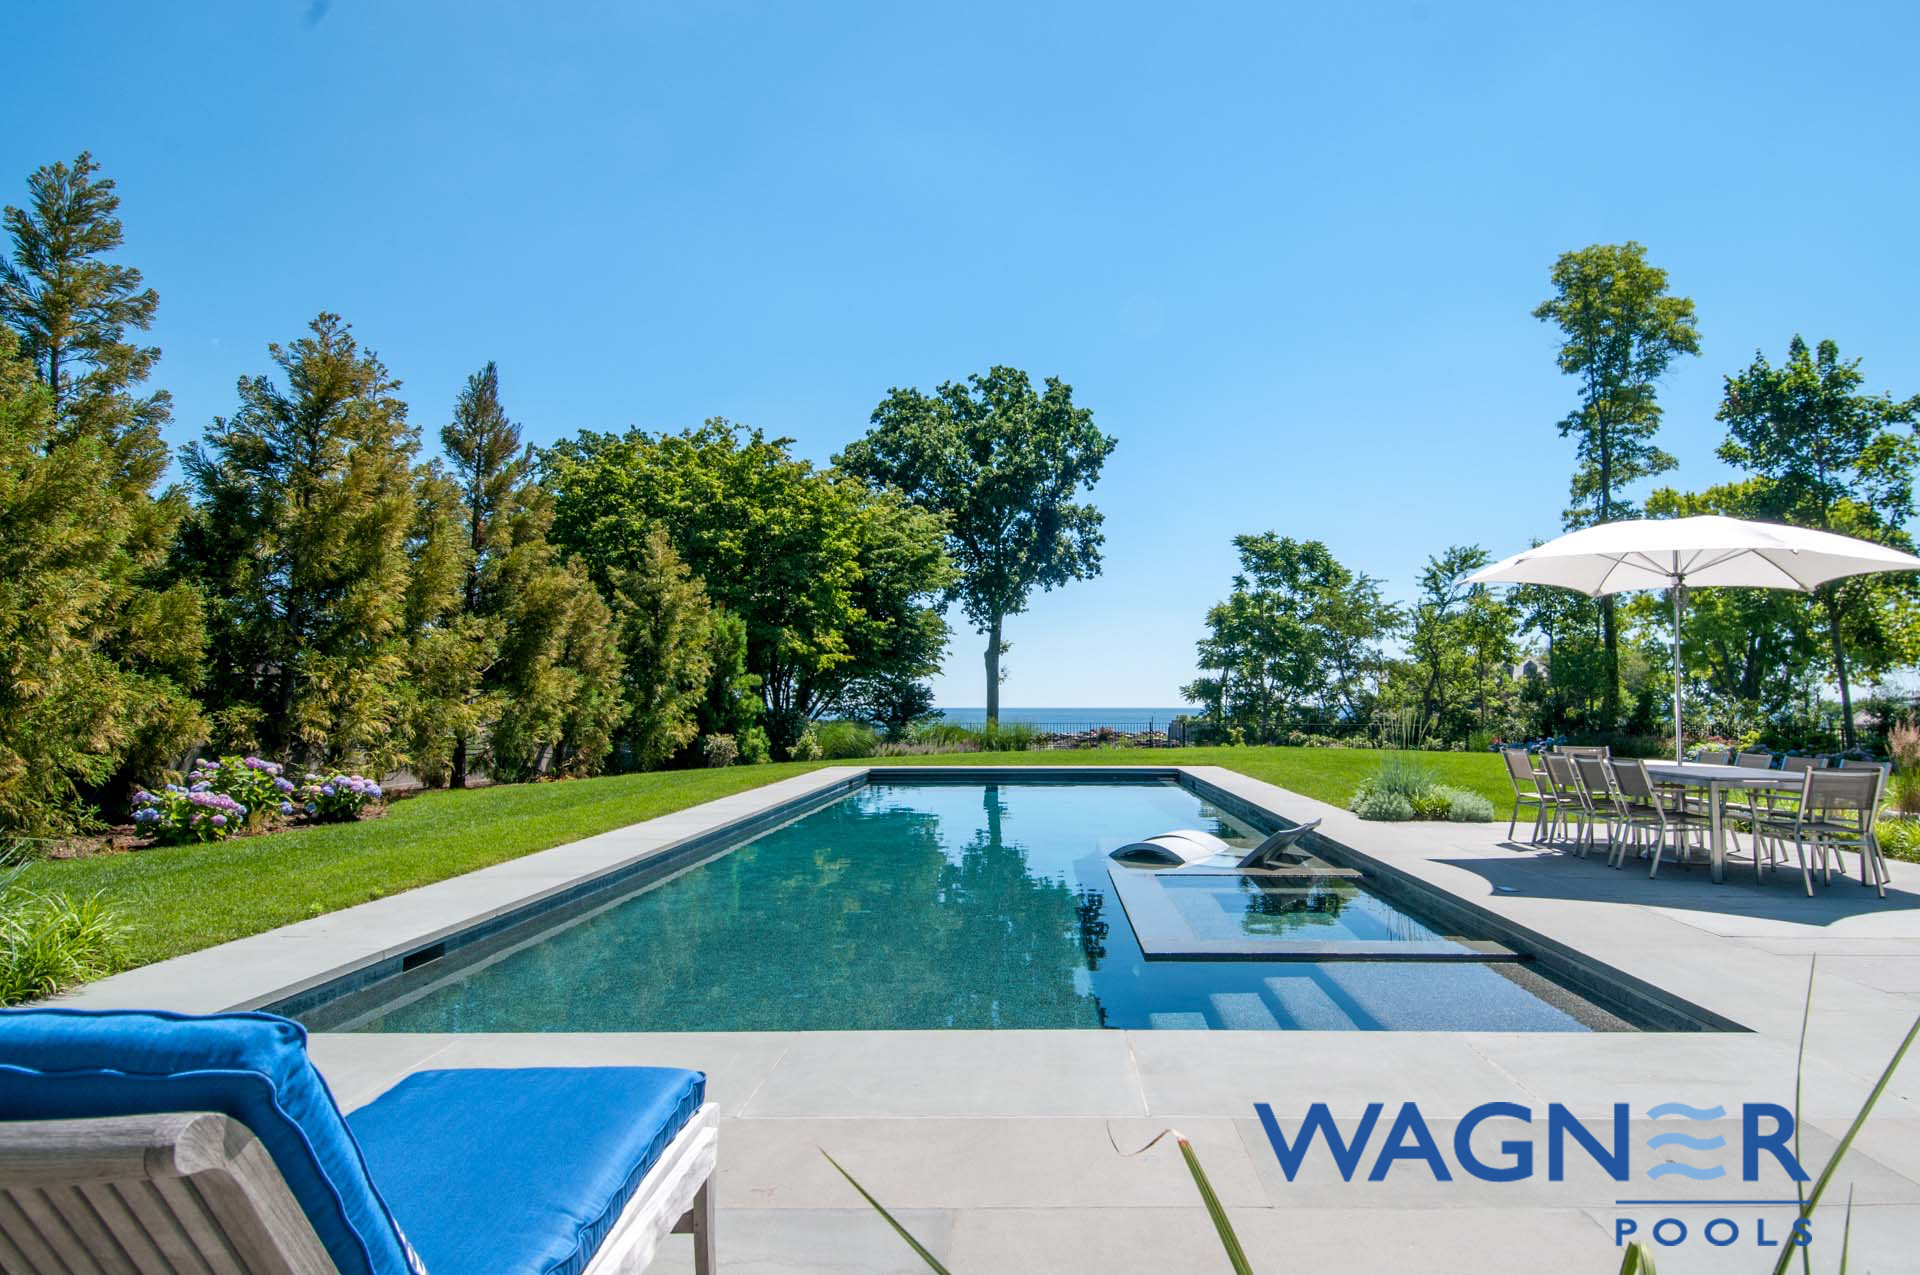 Wagner Pools image 3